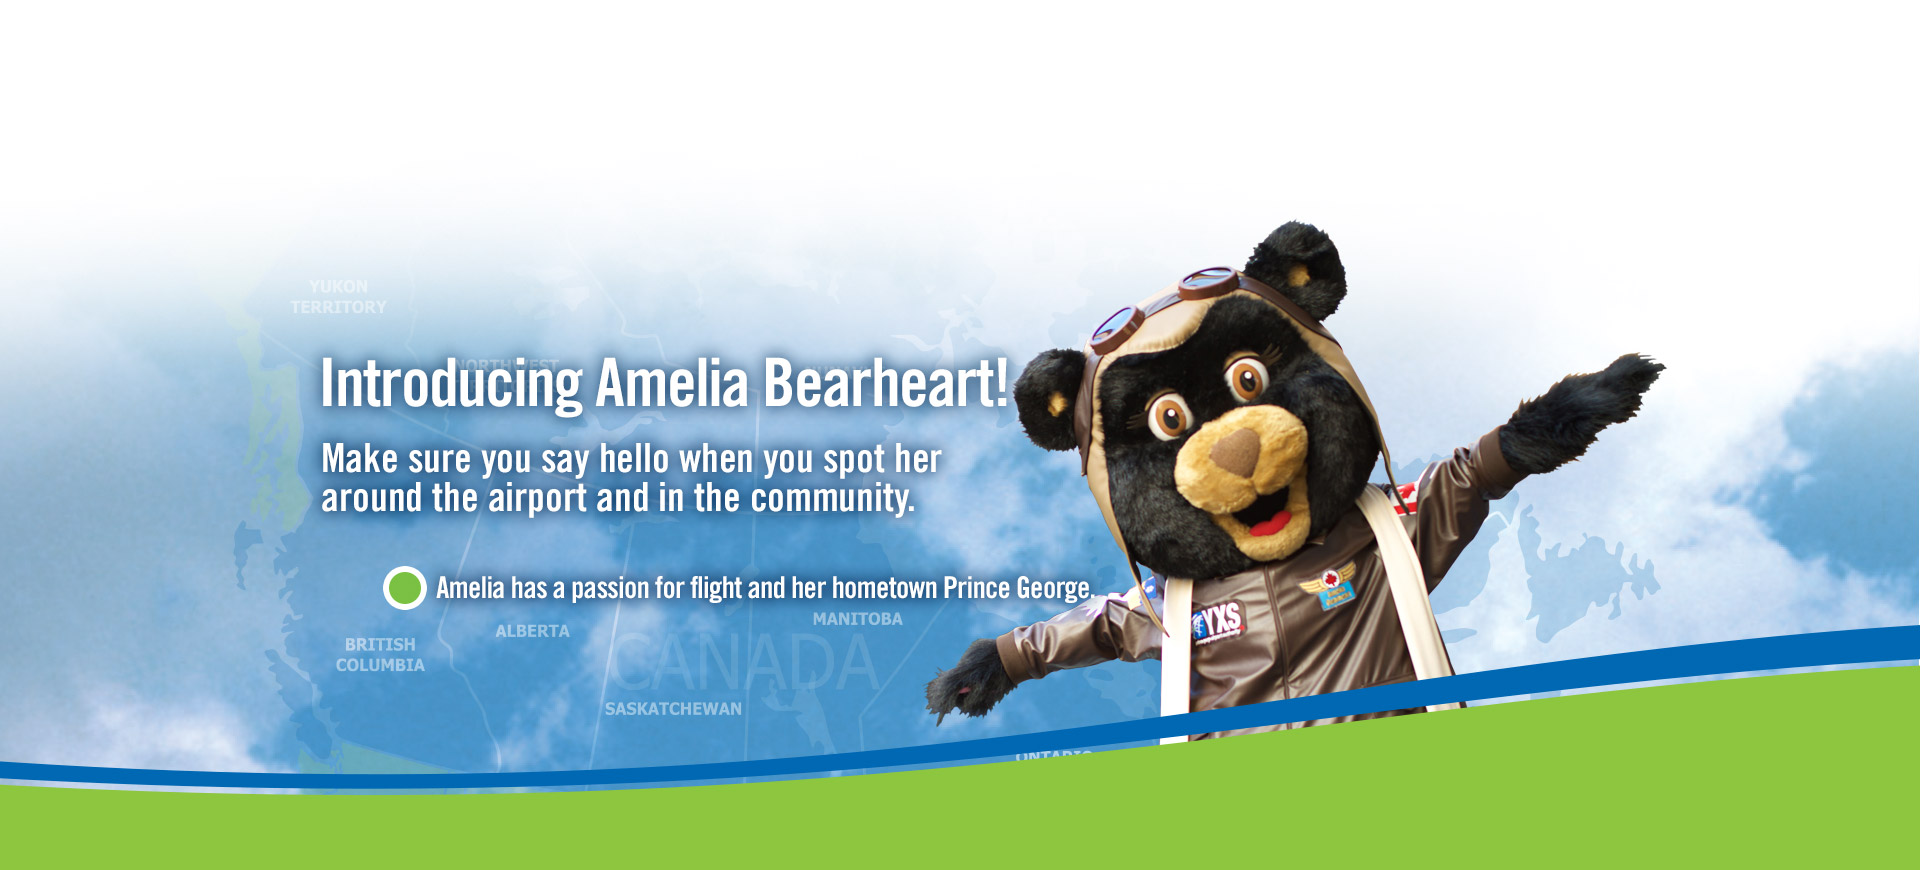 Introducing Amelia Bearheart graphic